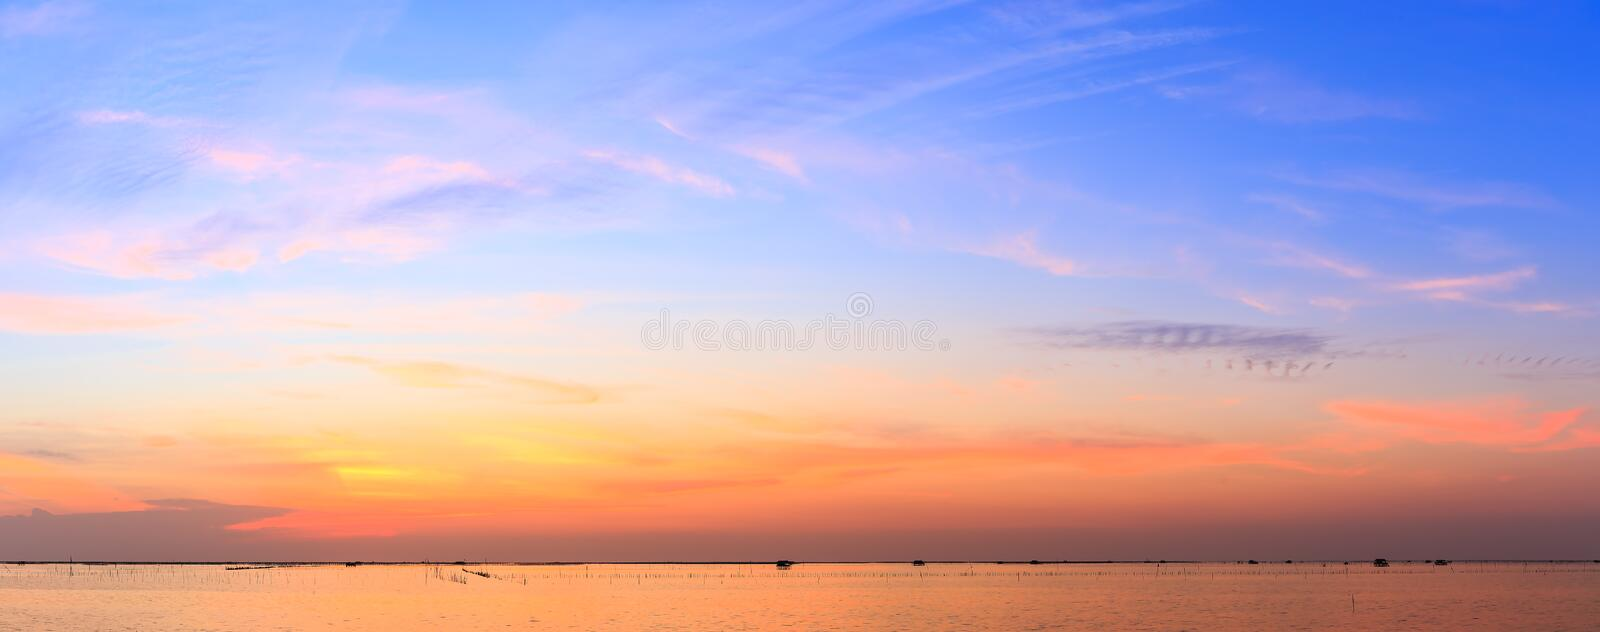 Panorama view of sunset over shell farm stock photos